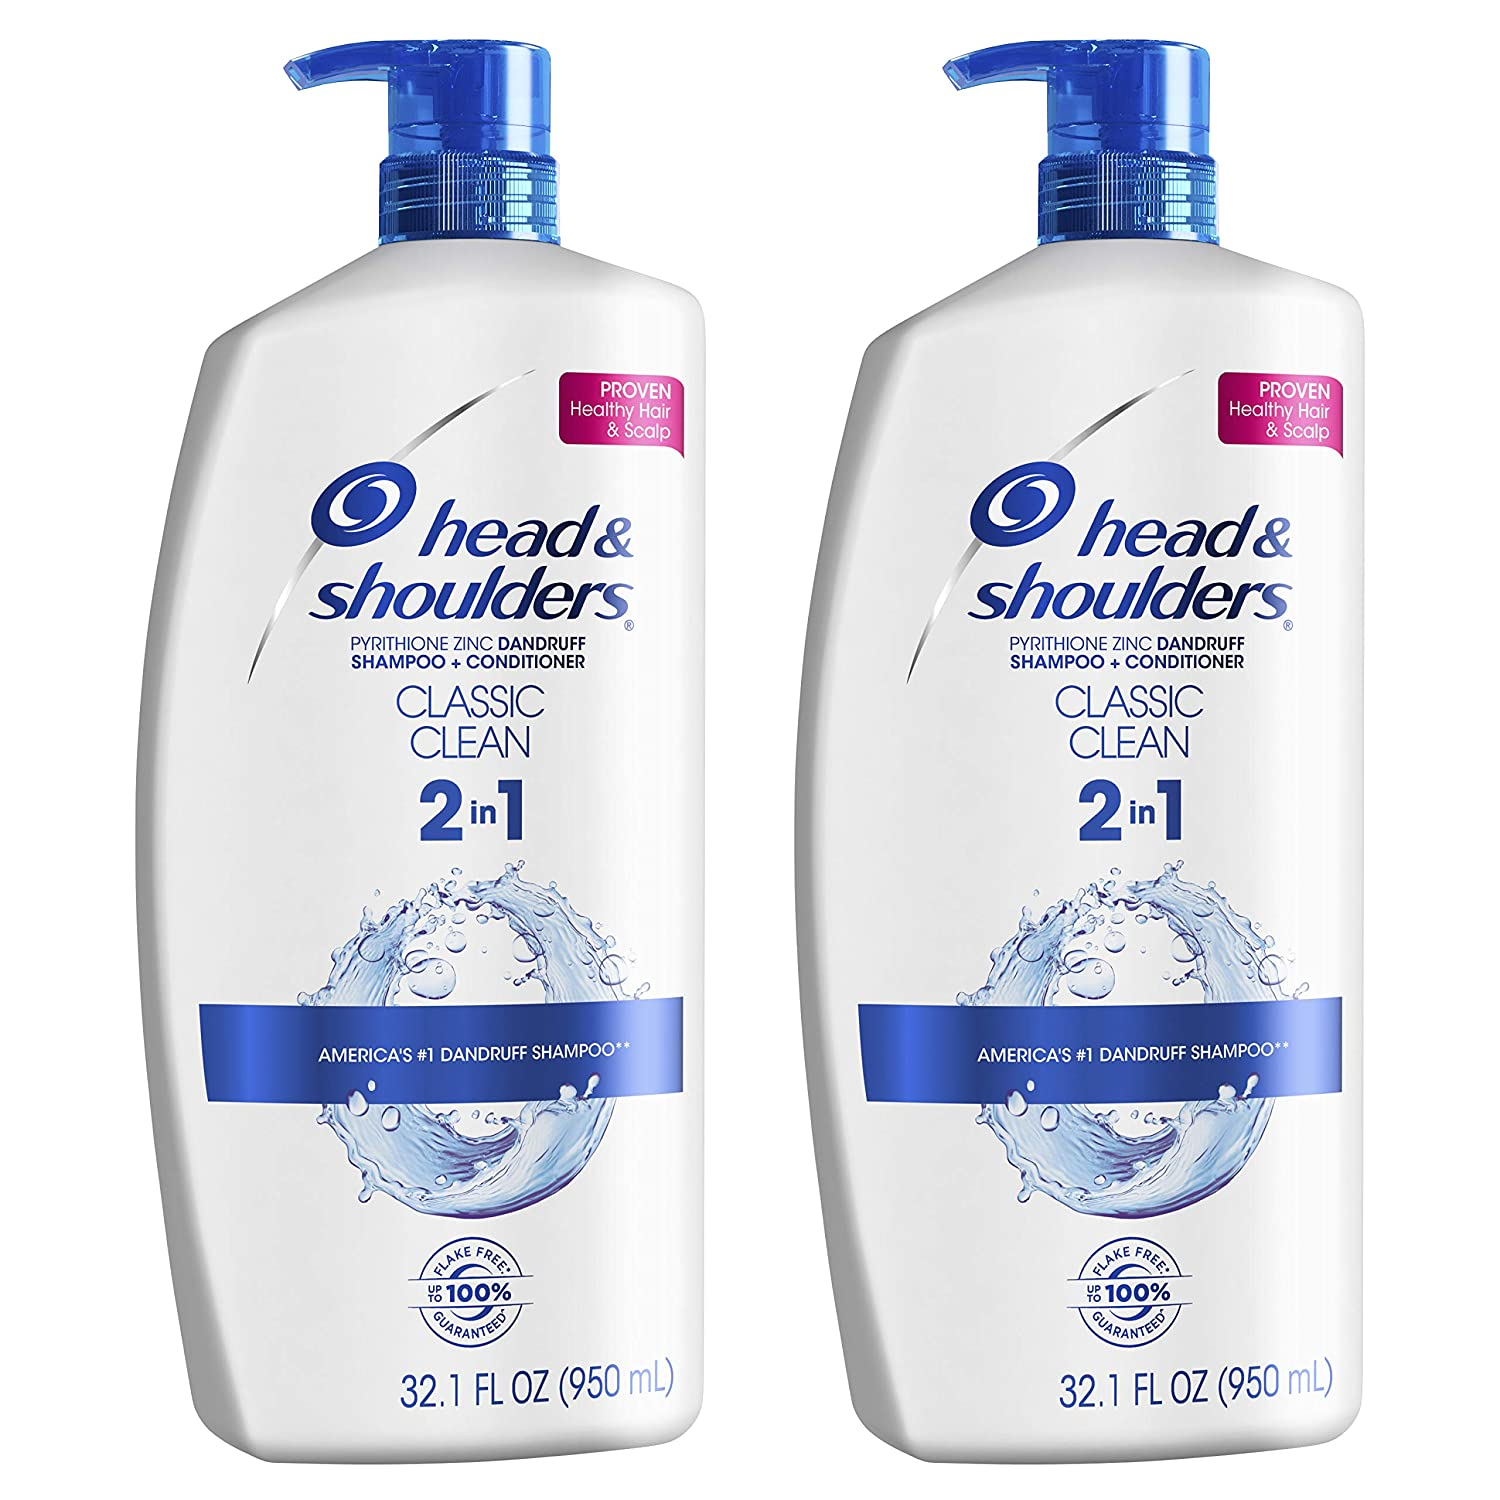 Head and Shoulders Shampoo and Conditioner 2-in-1 Anti Dandruff Treatment, two 32-ounce bottles